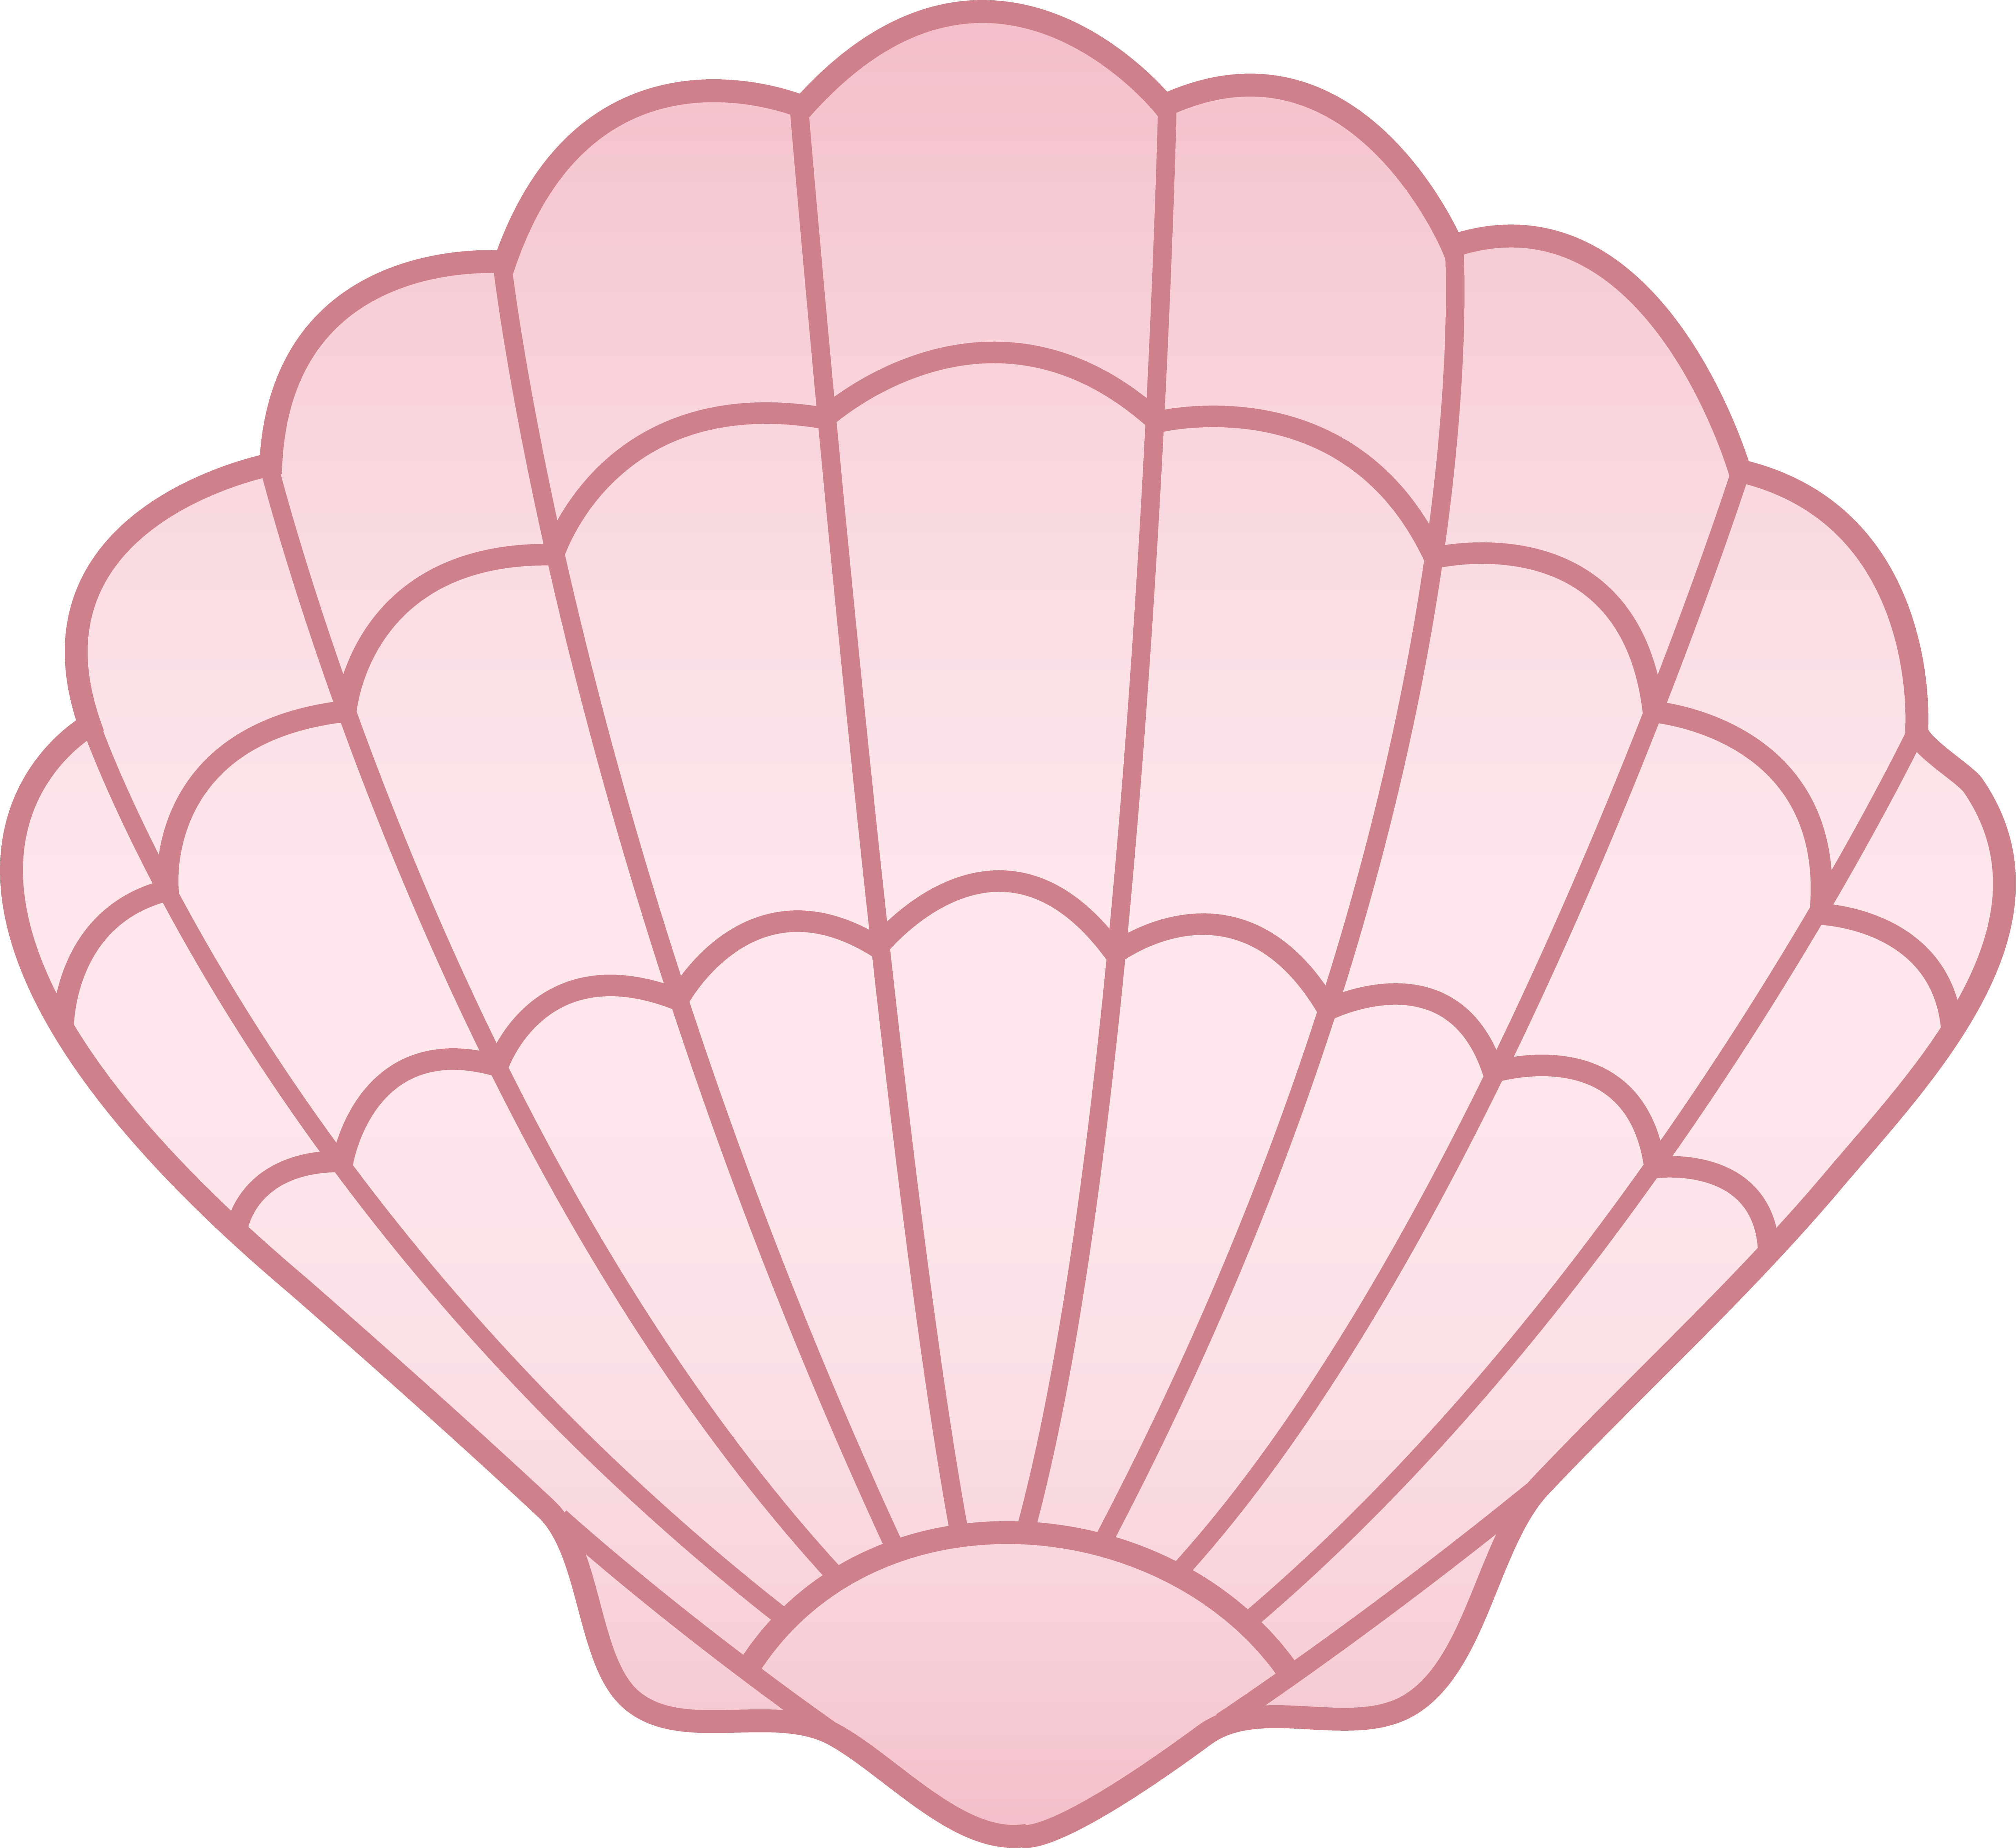 Mermaid clipart clam. Pink seashell free clip